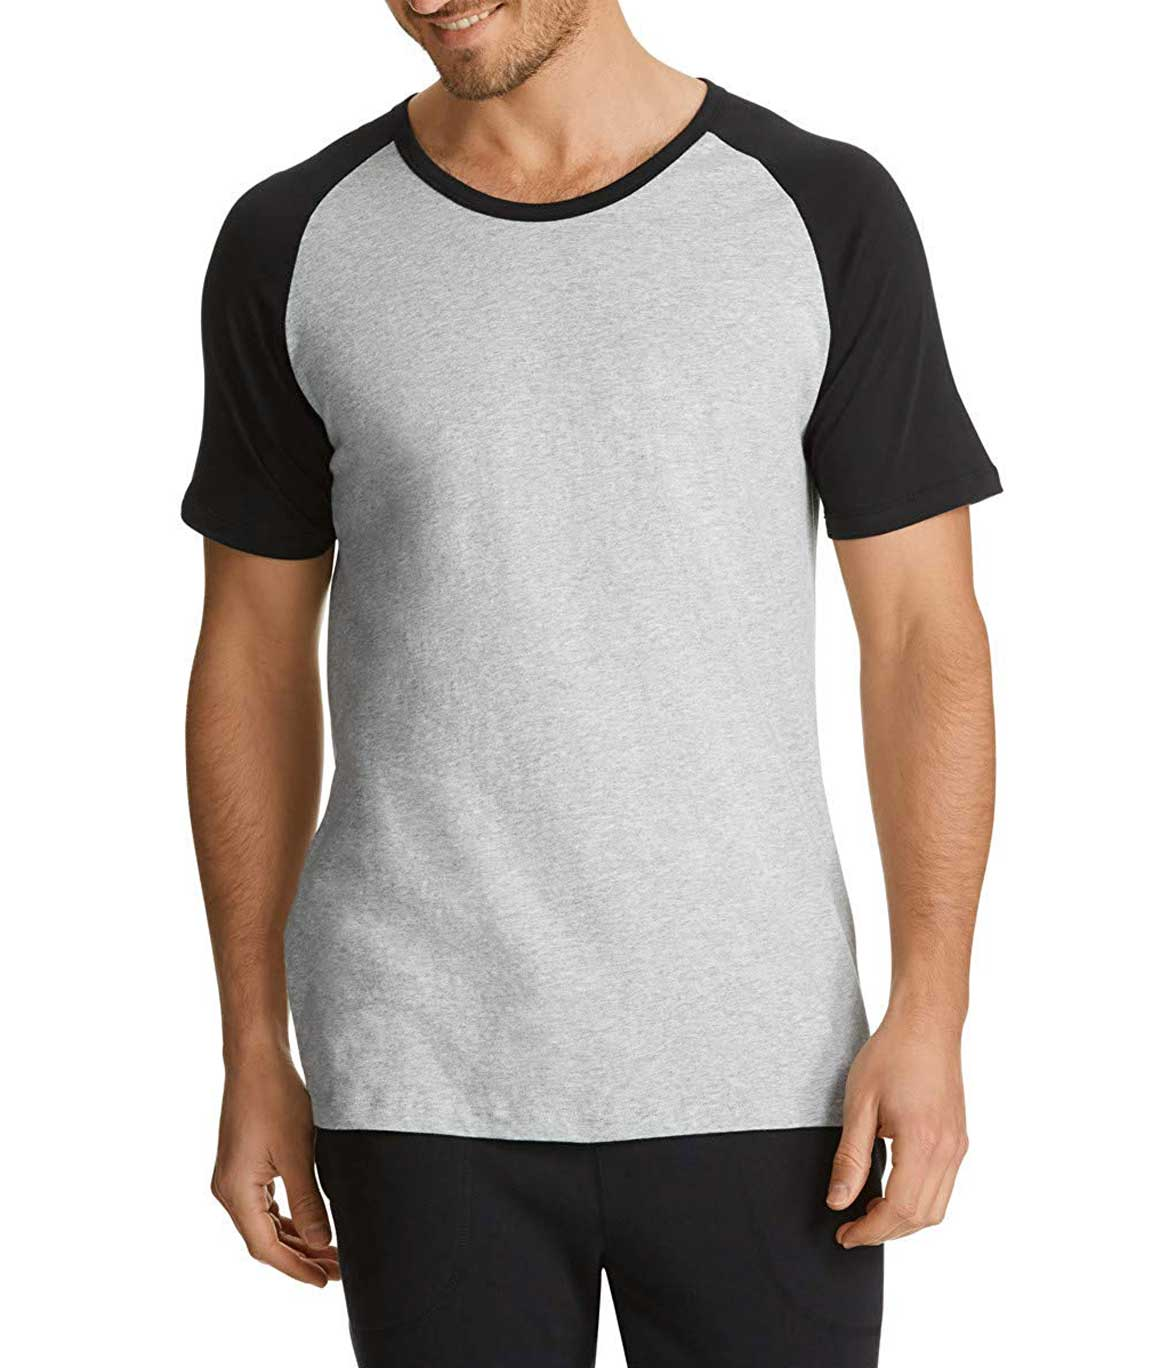 Vestiario Grey Round Neck T-Shirt